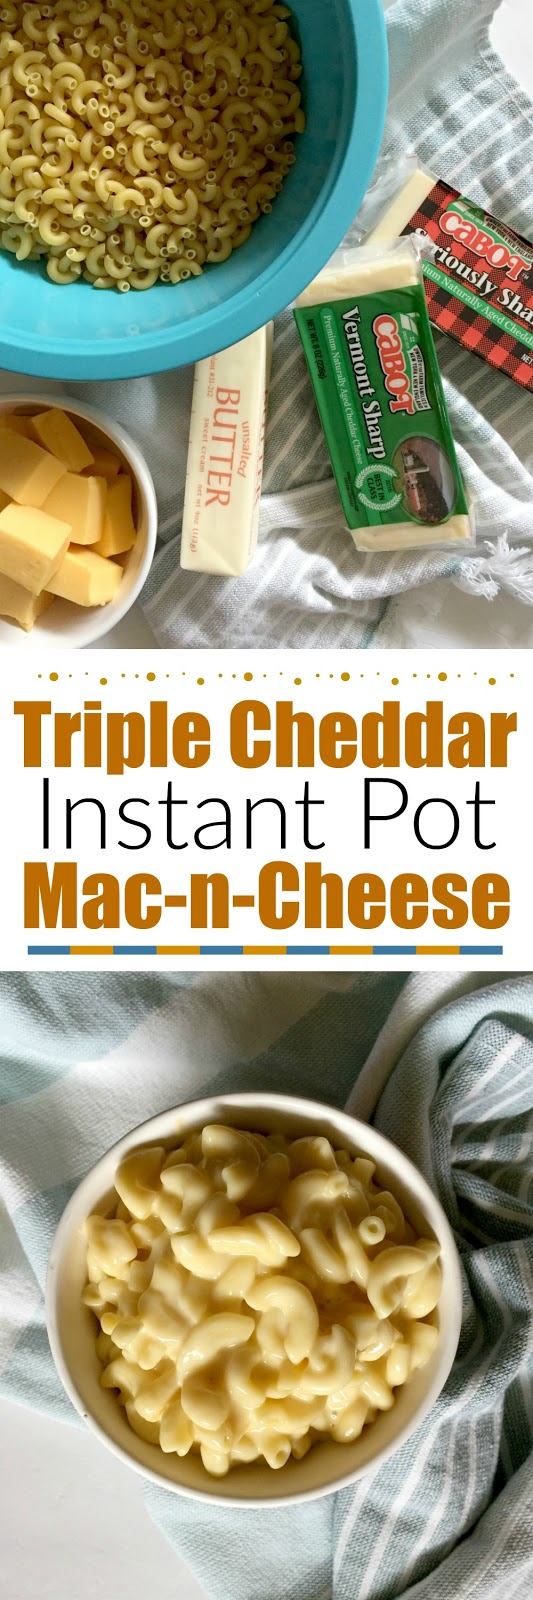 Triple Cheddar Instant Pot Mac-n-Cheese...the best macaroni and cheese you'll ever eat!  Ready in under 15 mintues and just six ingredients, it's creamy and smooth and very cheesy! (sweetandsavoryfood.com)